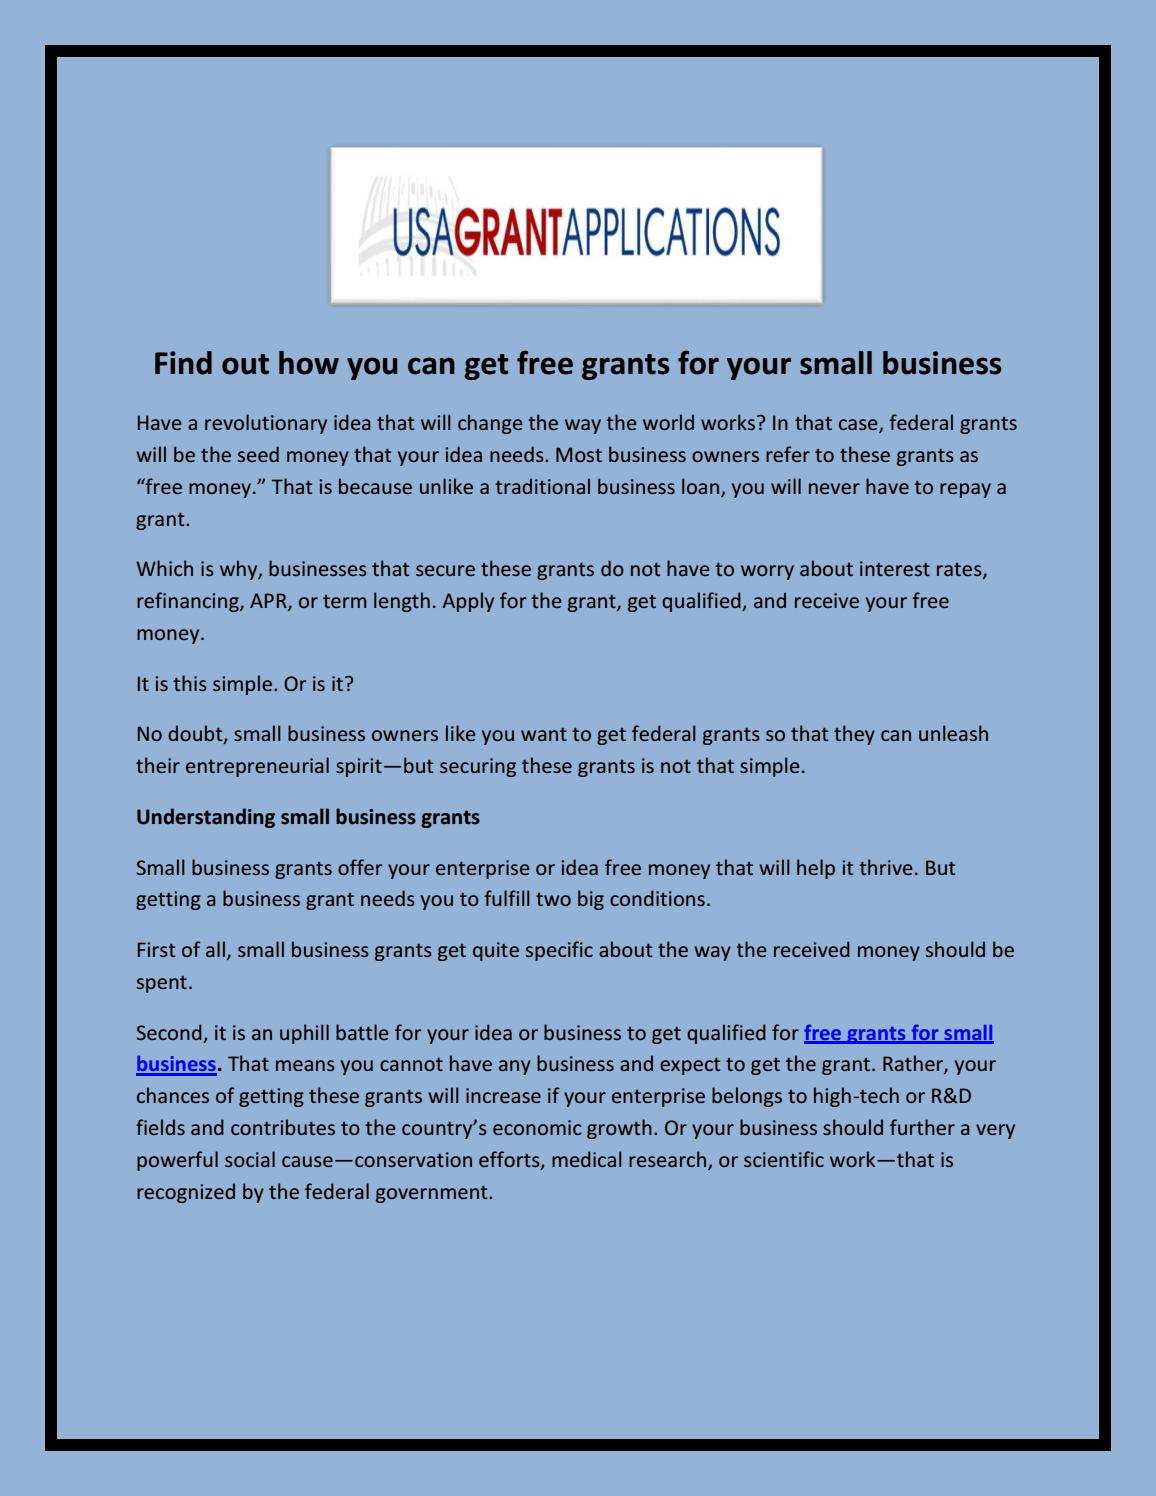 Find out how you can get free grants for your small business